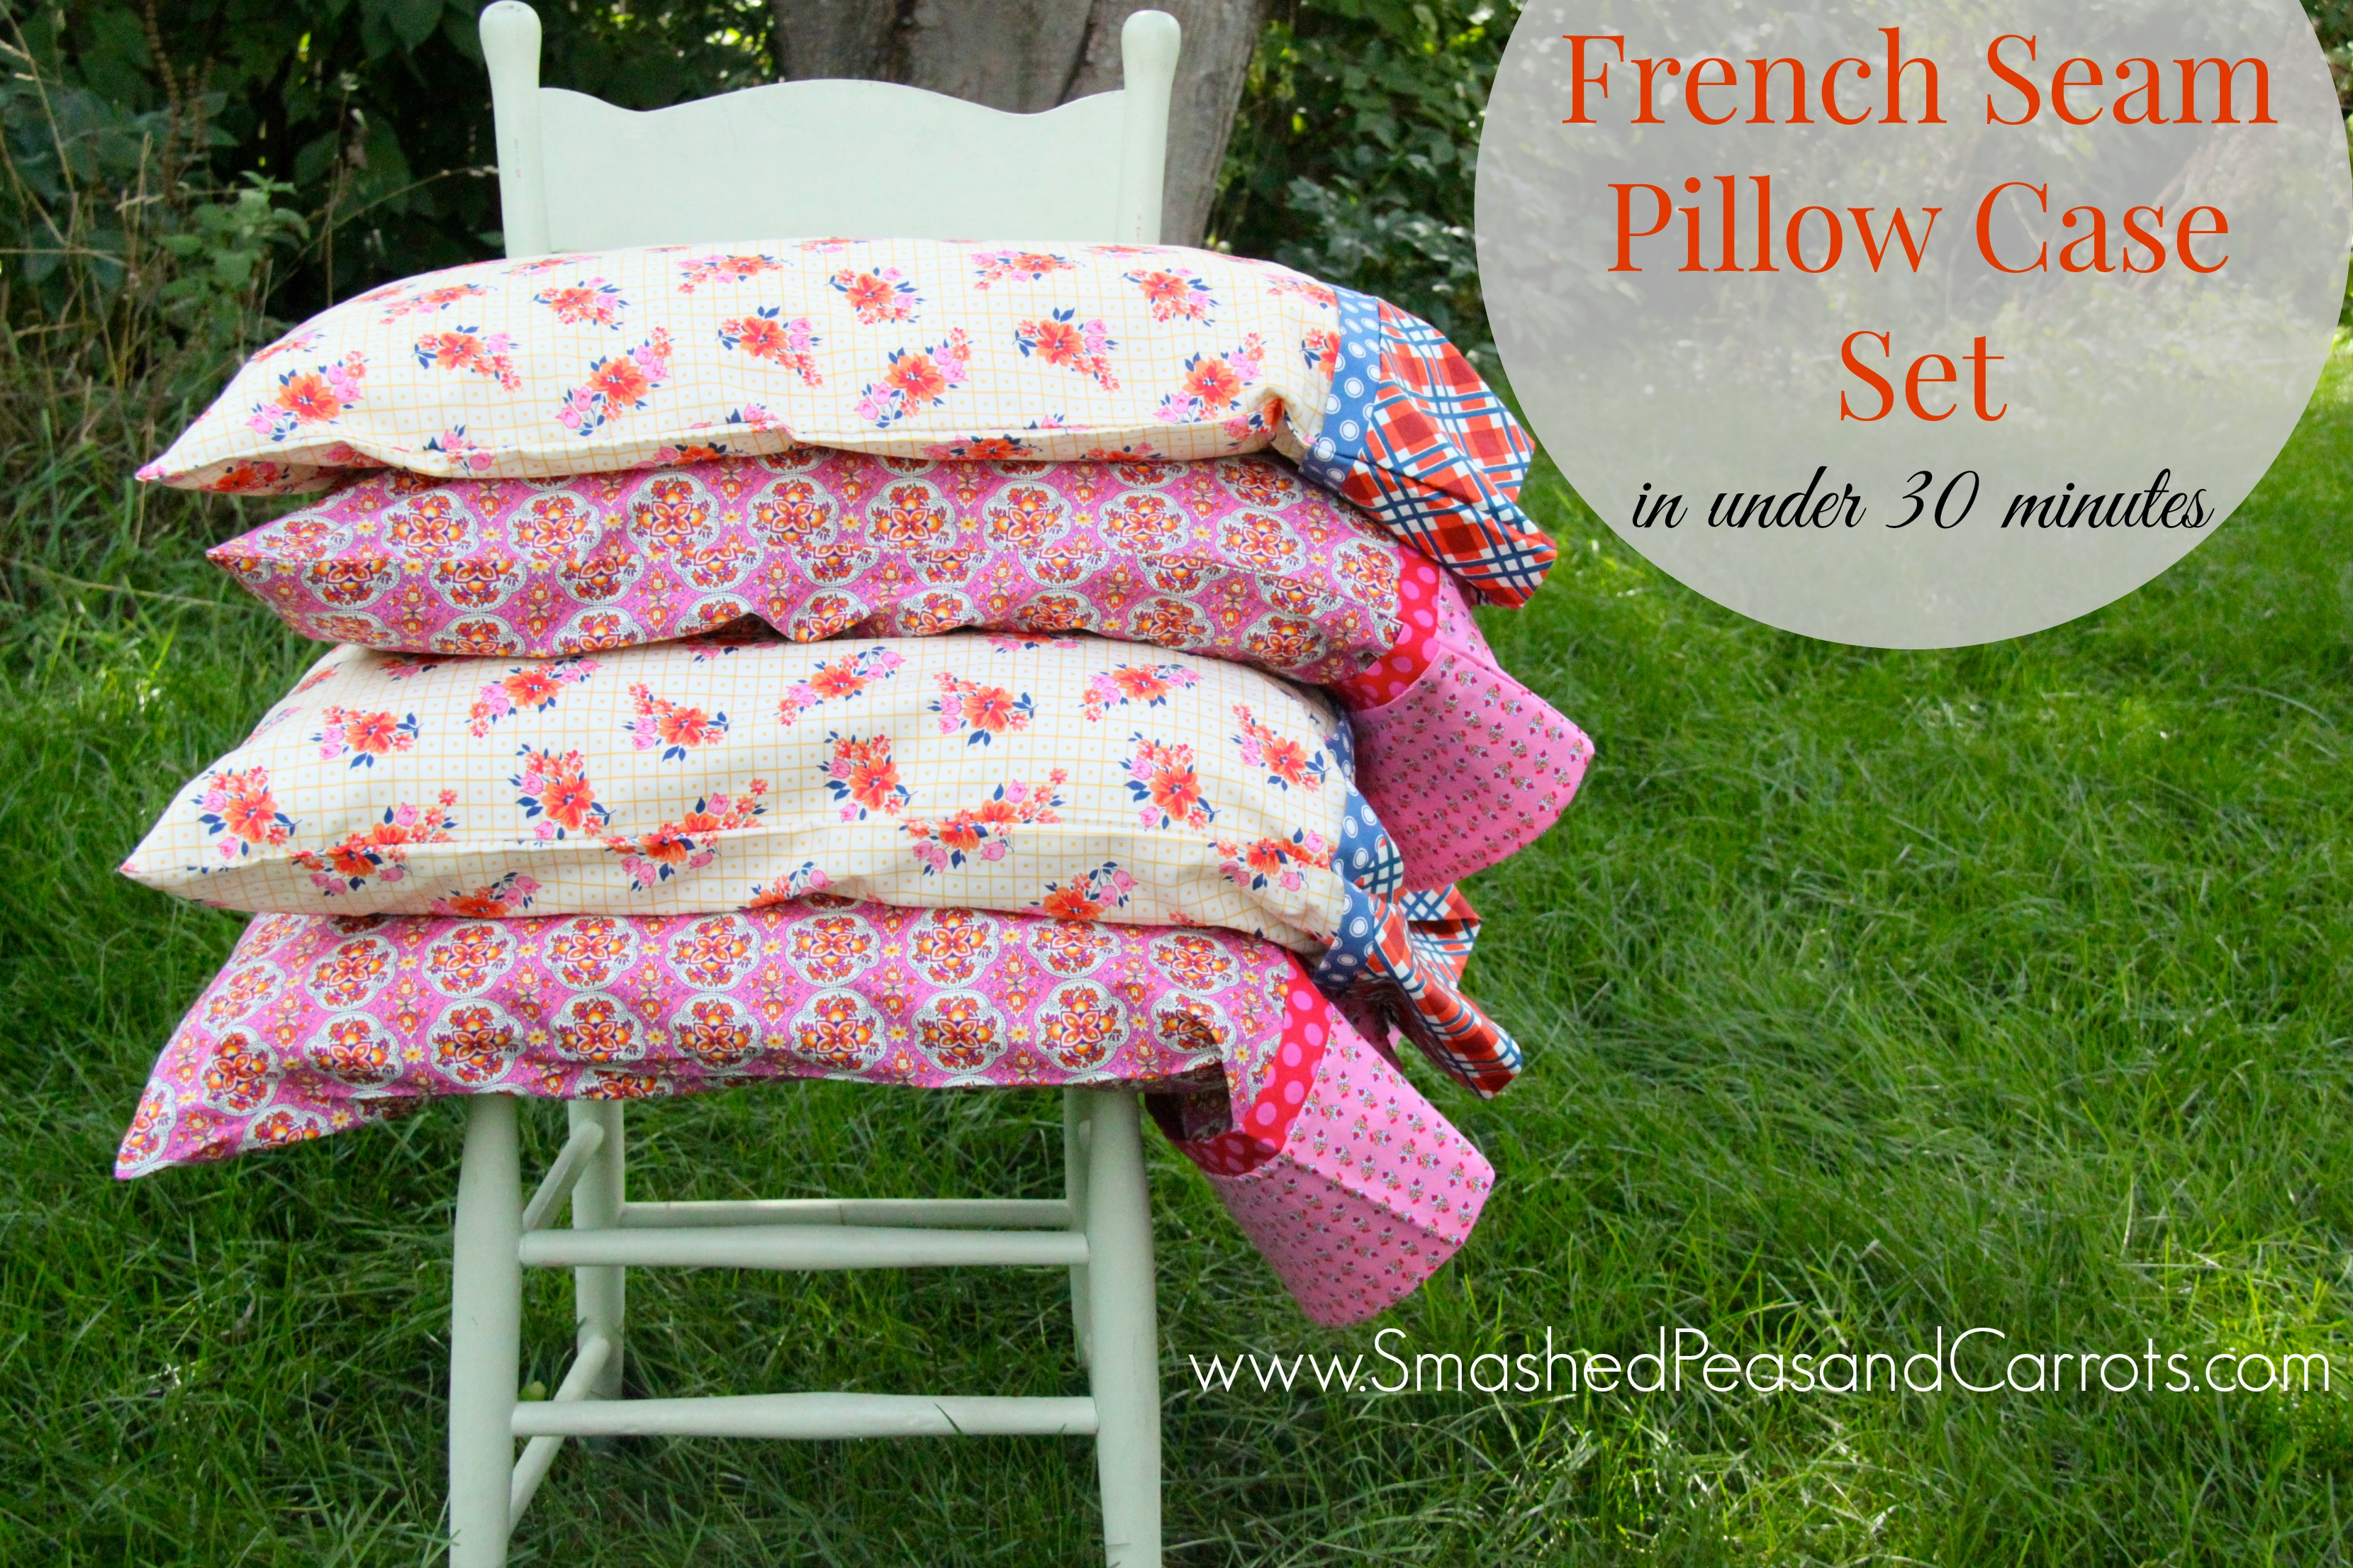 French Seam Pillowcase Set in Under 30 Minutes-Tutorial - Smashed Peas \u0026 Carrots & French Seam Pillowcase Set in Under 30 Minutes-Tutorial - Smashed ... pillowsntoast.com